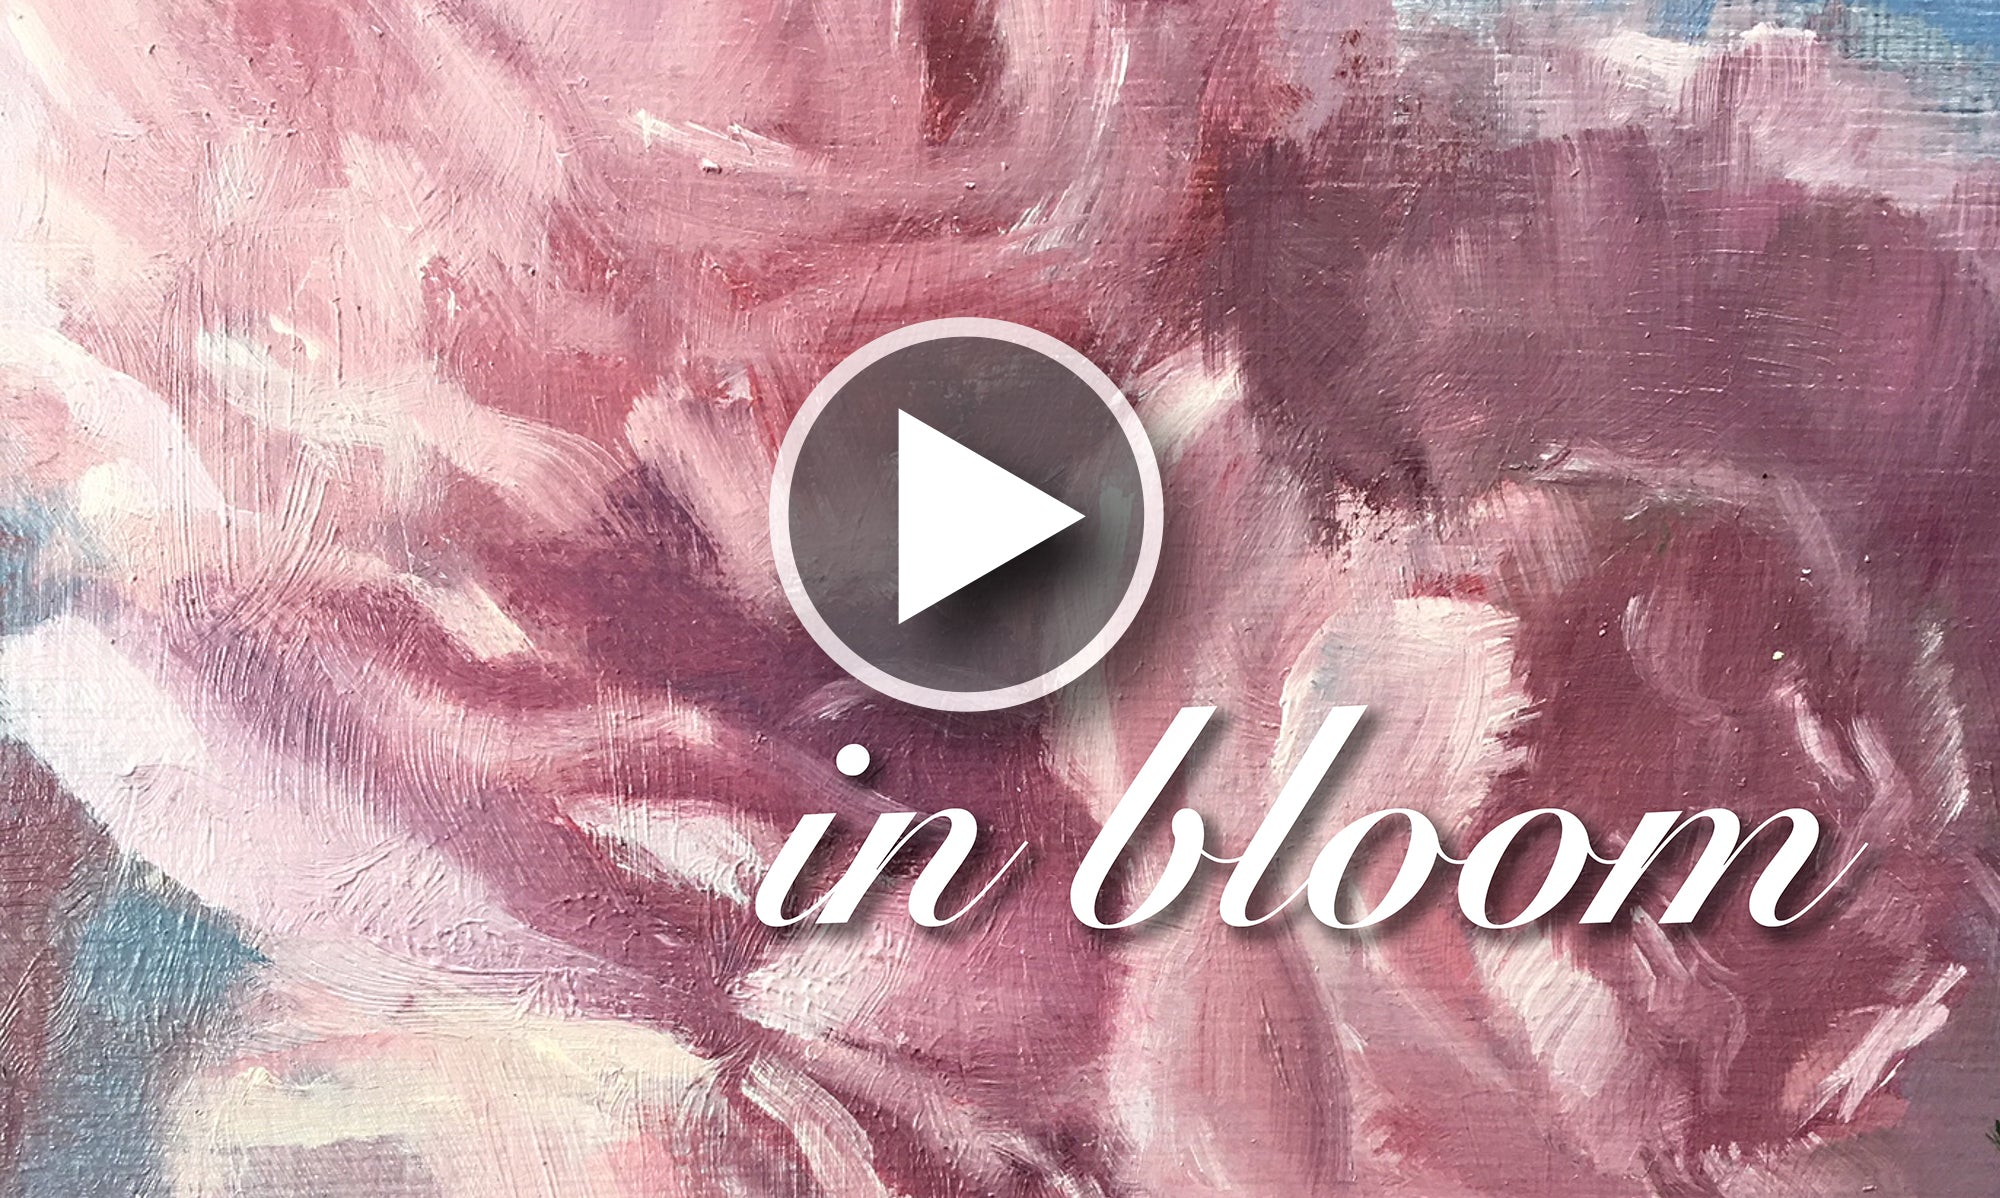 In Bloom: Online Exhibition